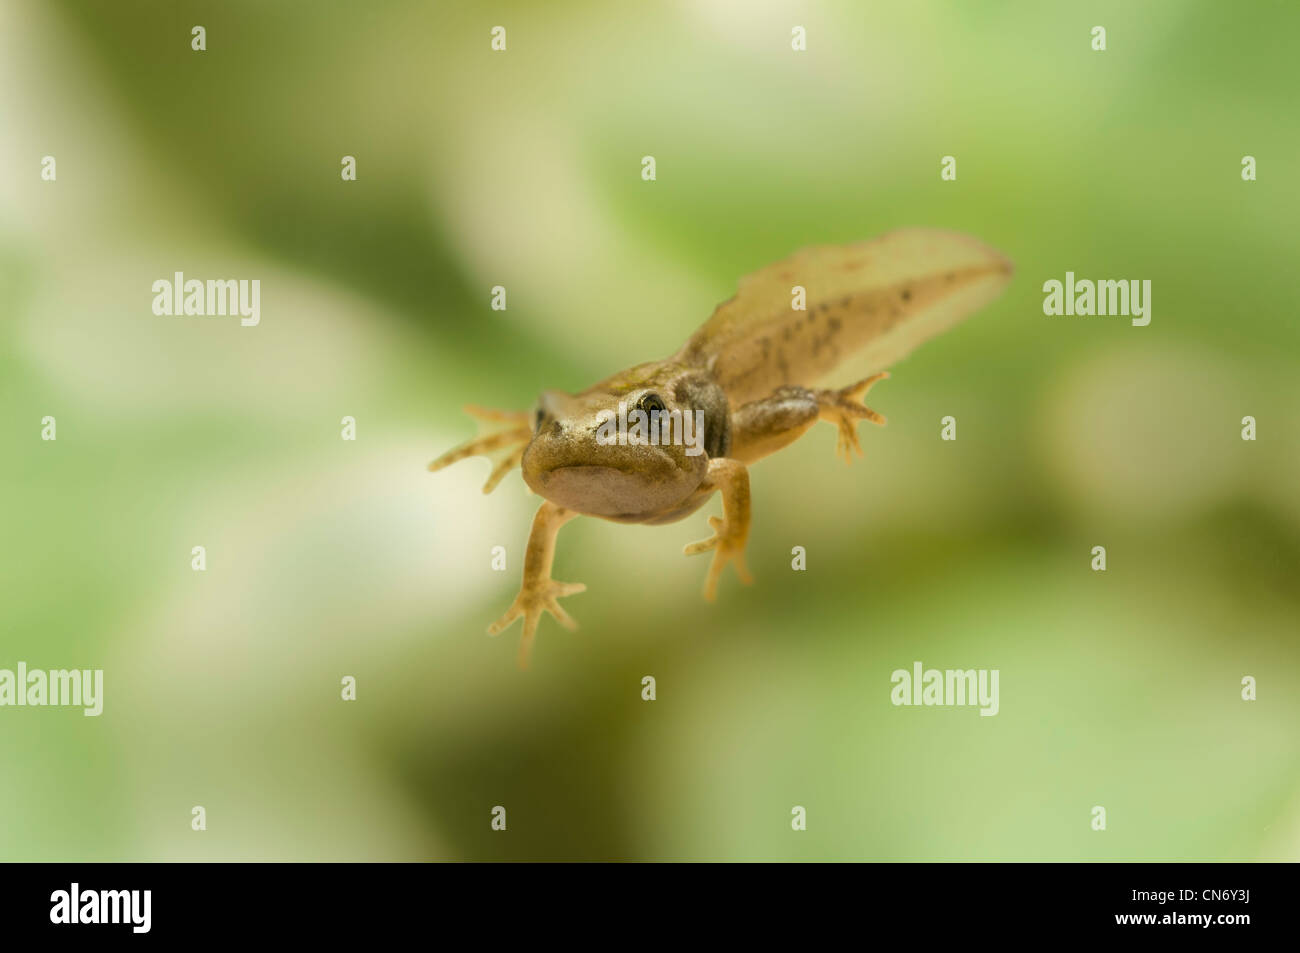 common frog tadpole with legs, photographed in a tank and released afterwards. - Stock Image